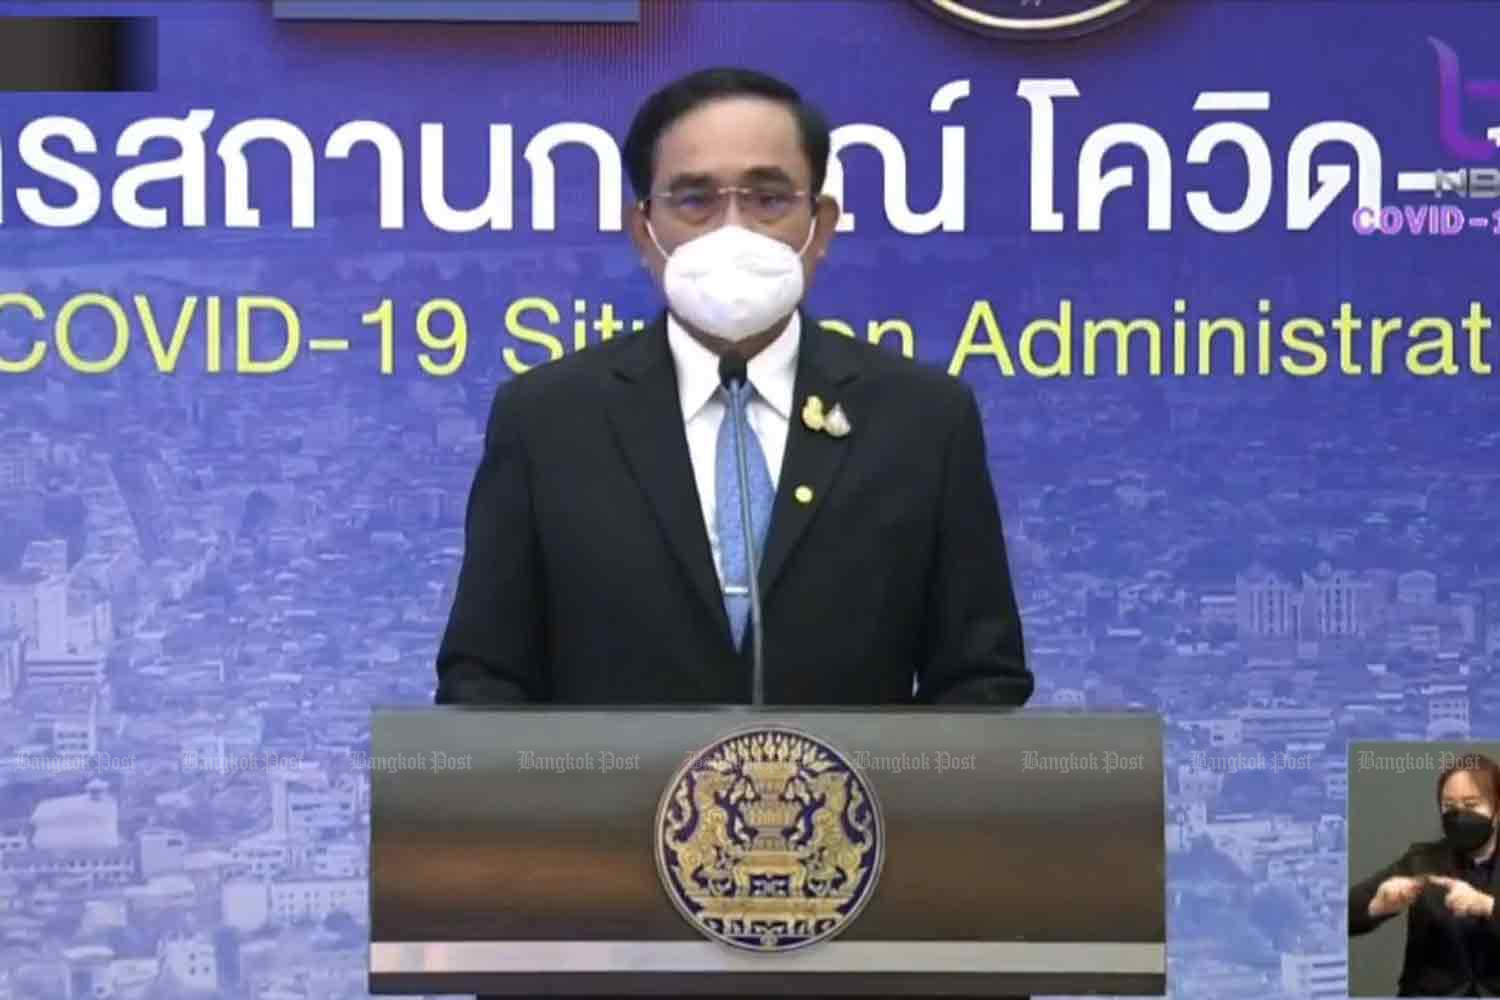 Prime Minister Prayut Chan-o-cha confirms Thailand is ready to lift quarantine for fully vaccinated travellers from five countries from Nov 1, and open more provinces to visitors, after chairing a meeting of the Centre for Covid-19 Situation Administration at Government House on Thursday. (Screenshot)